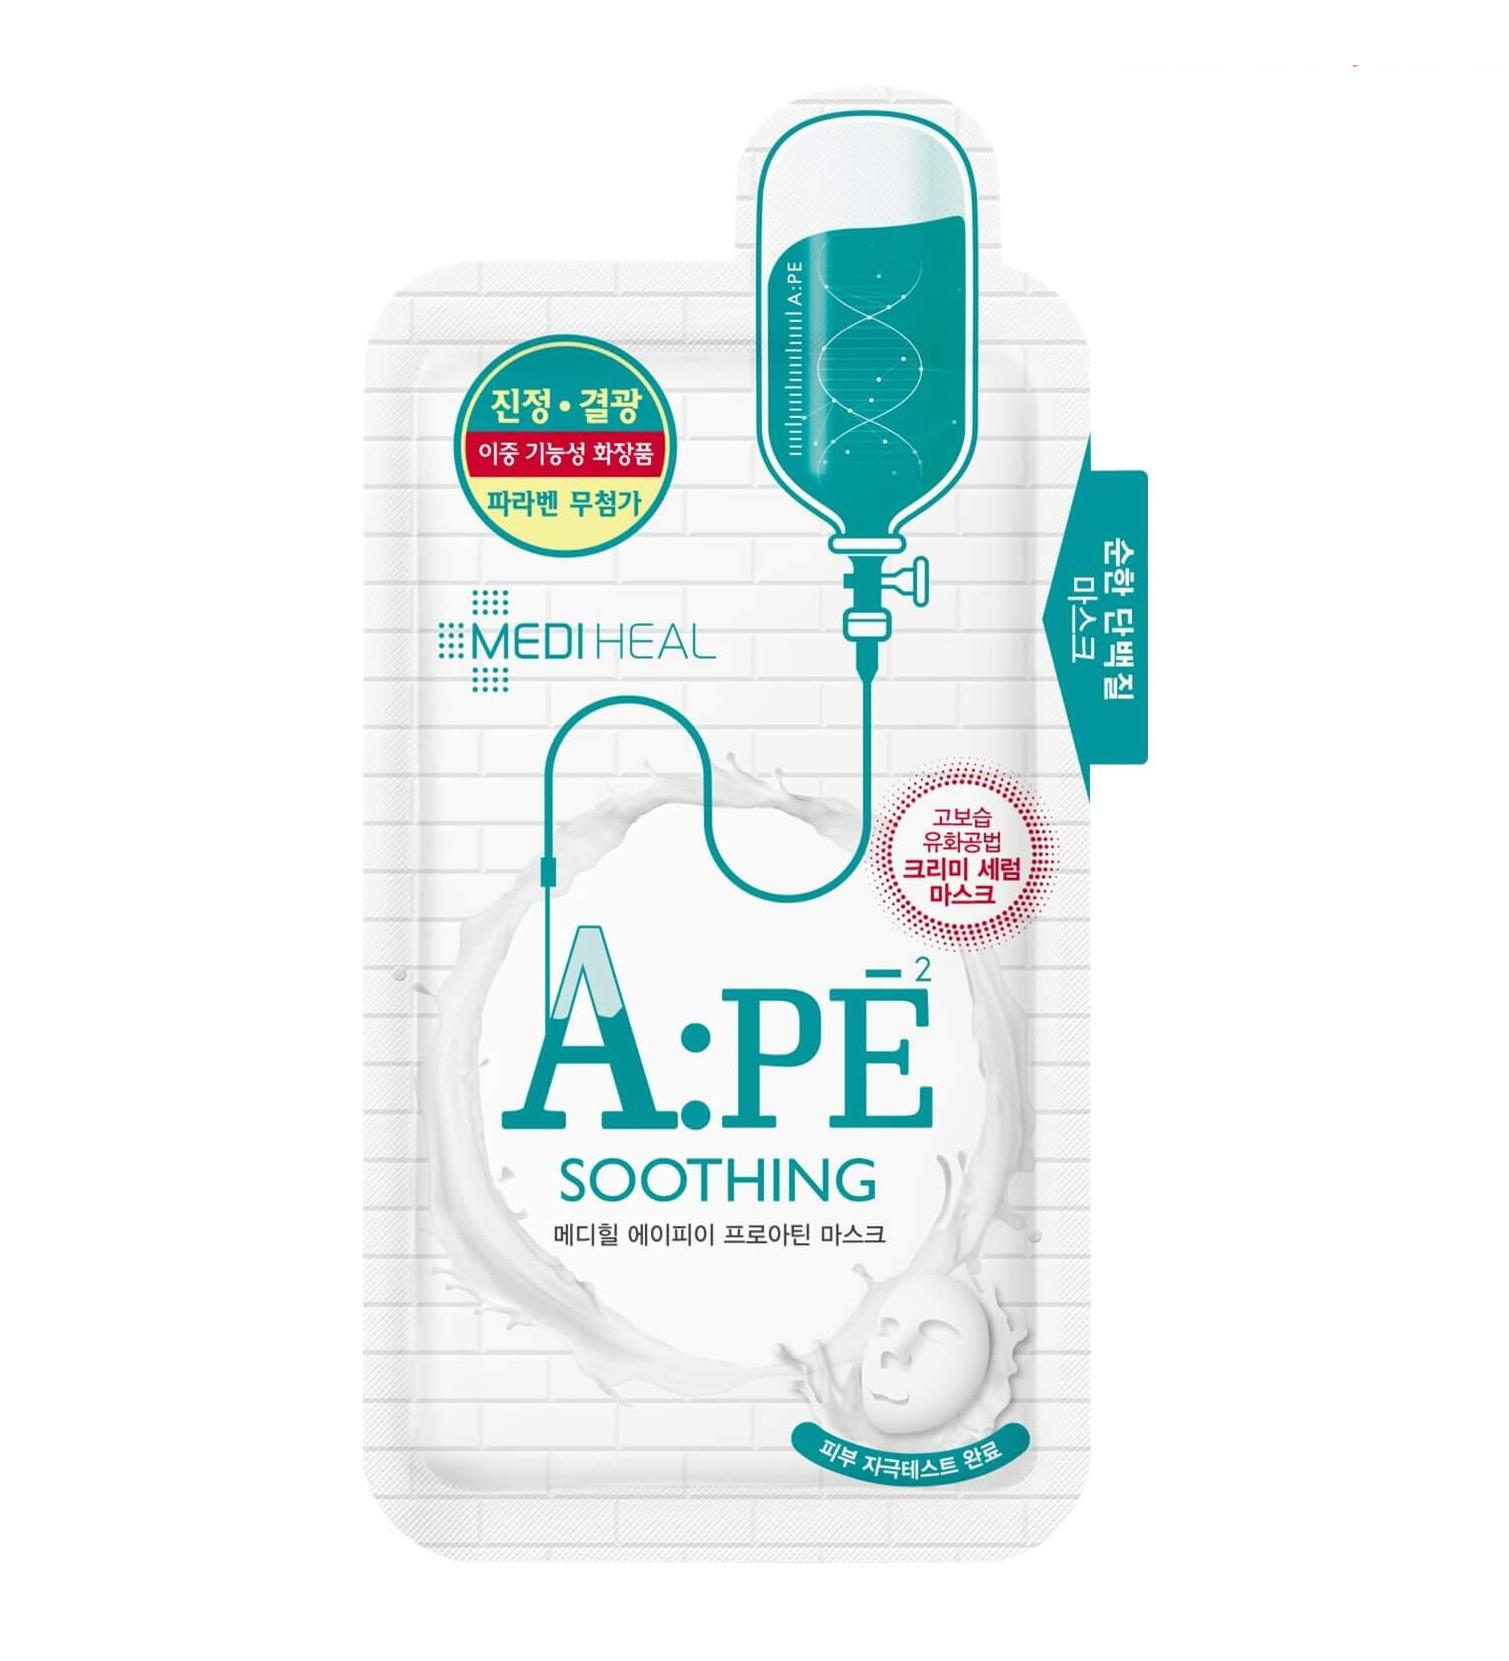 mat-na-mediheal-a-pe-soothing-mask-review-thanh-phan-gia-cong-dung-46